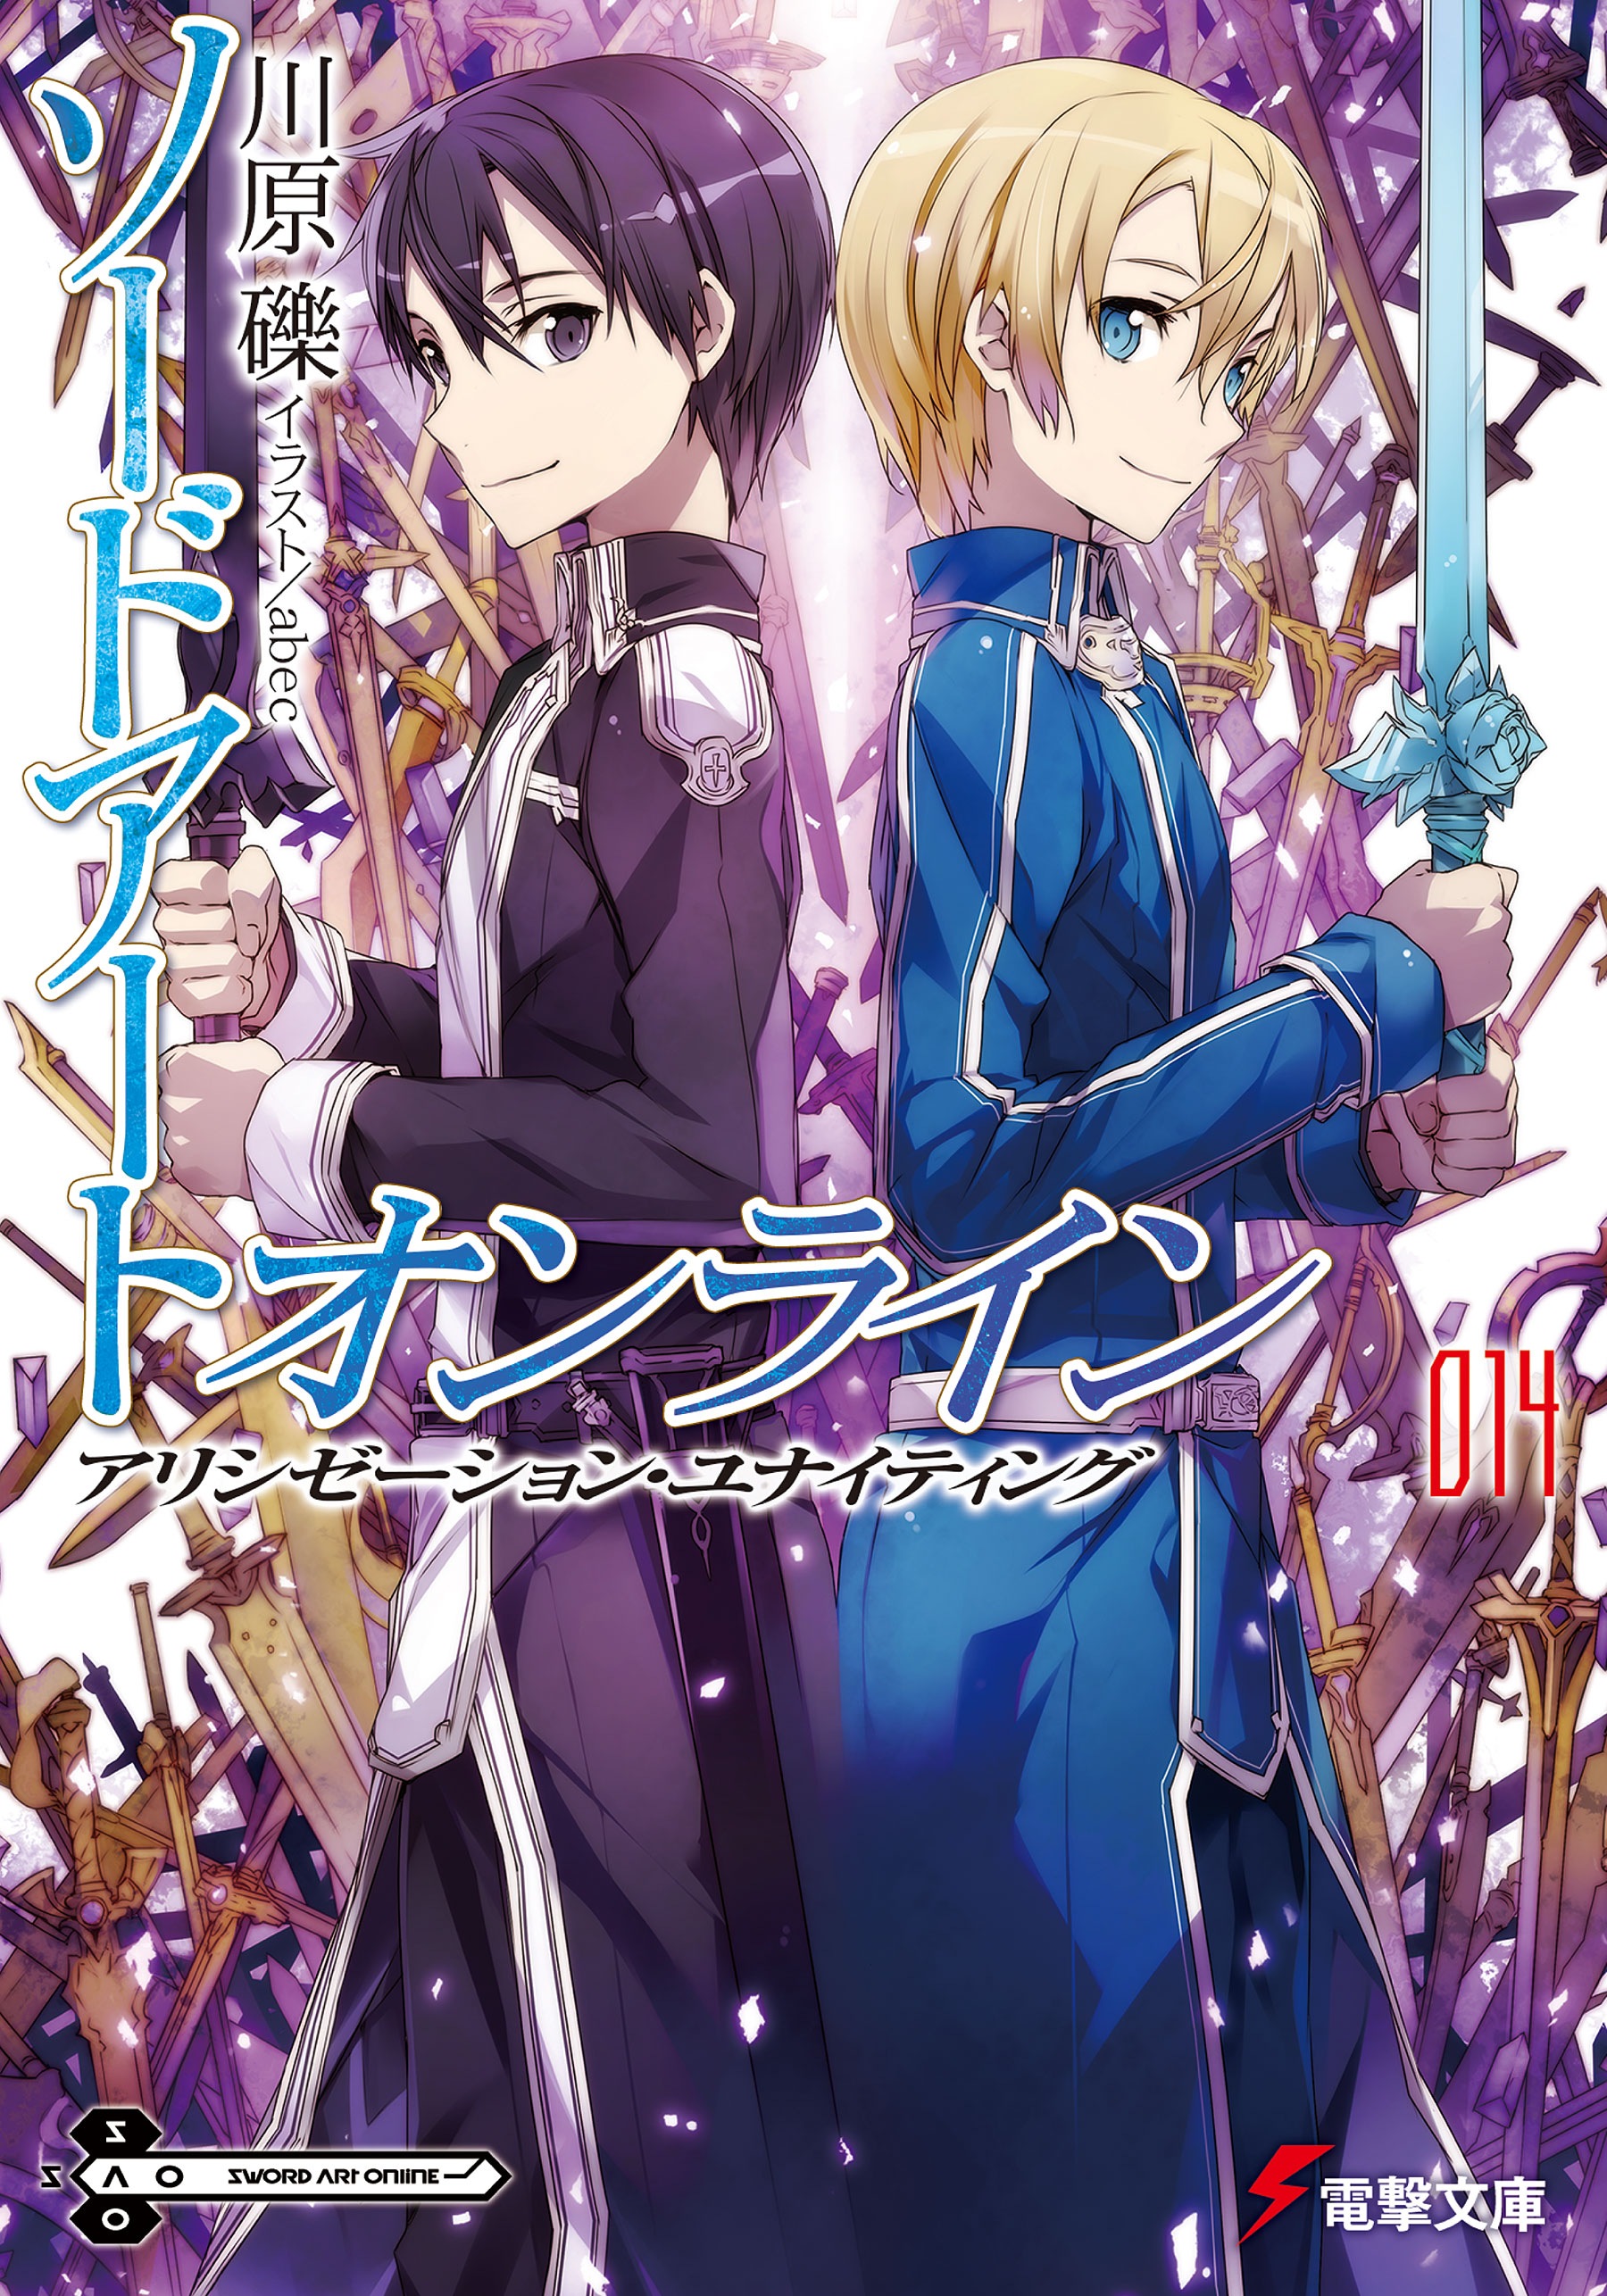 Sword Art Online Light Novel Volume 14 | Sword Art Online